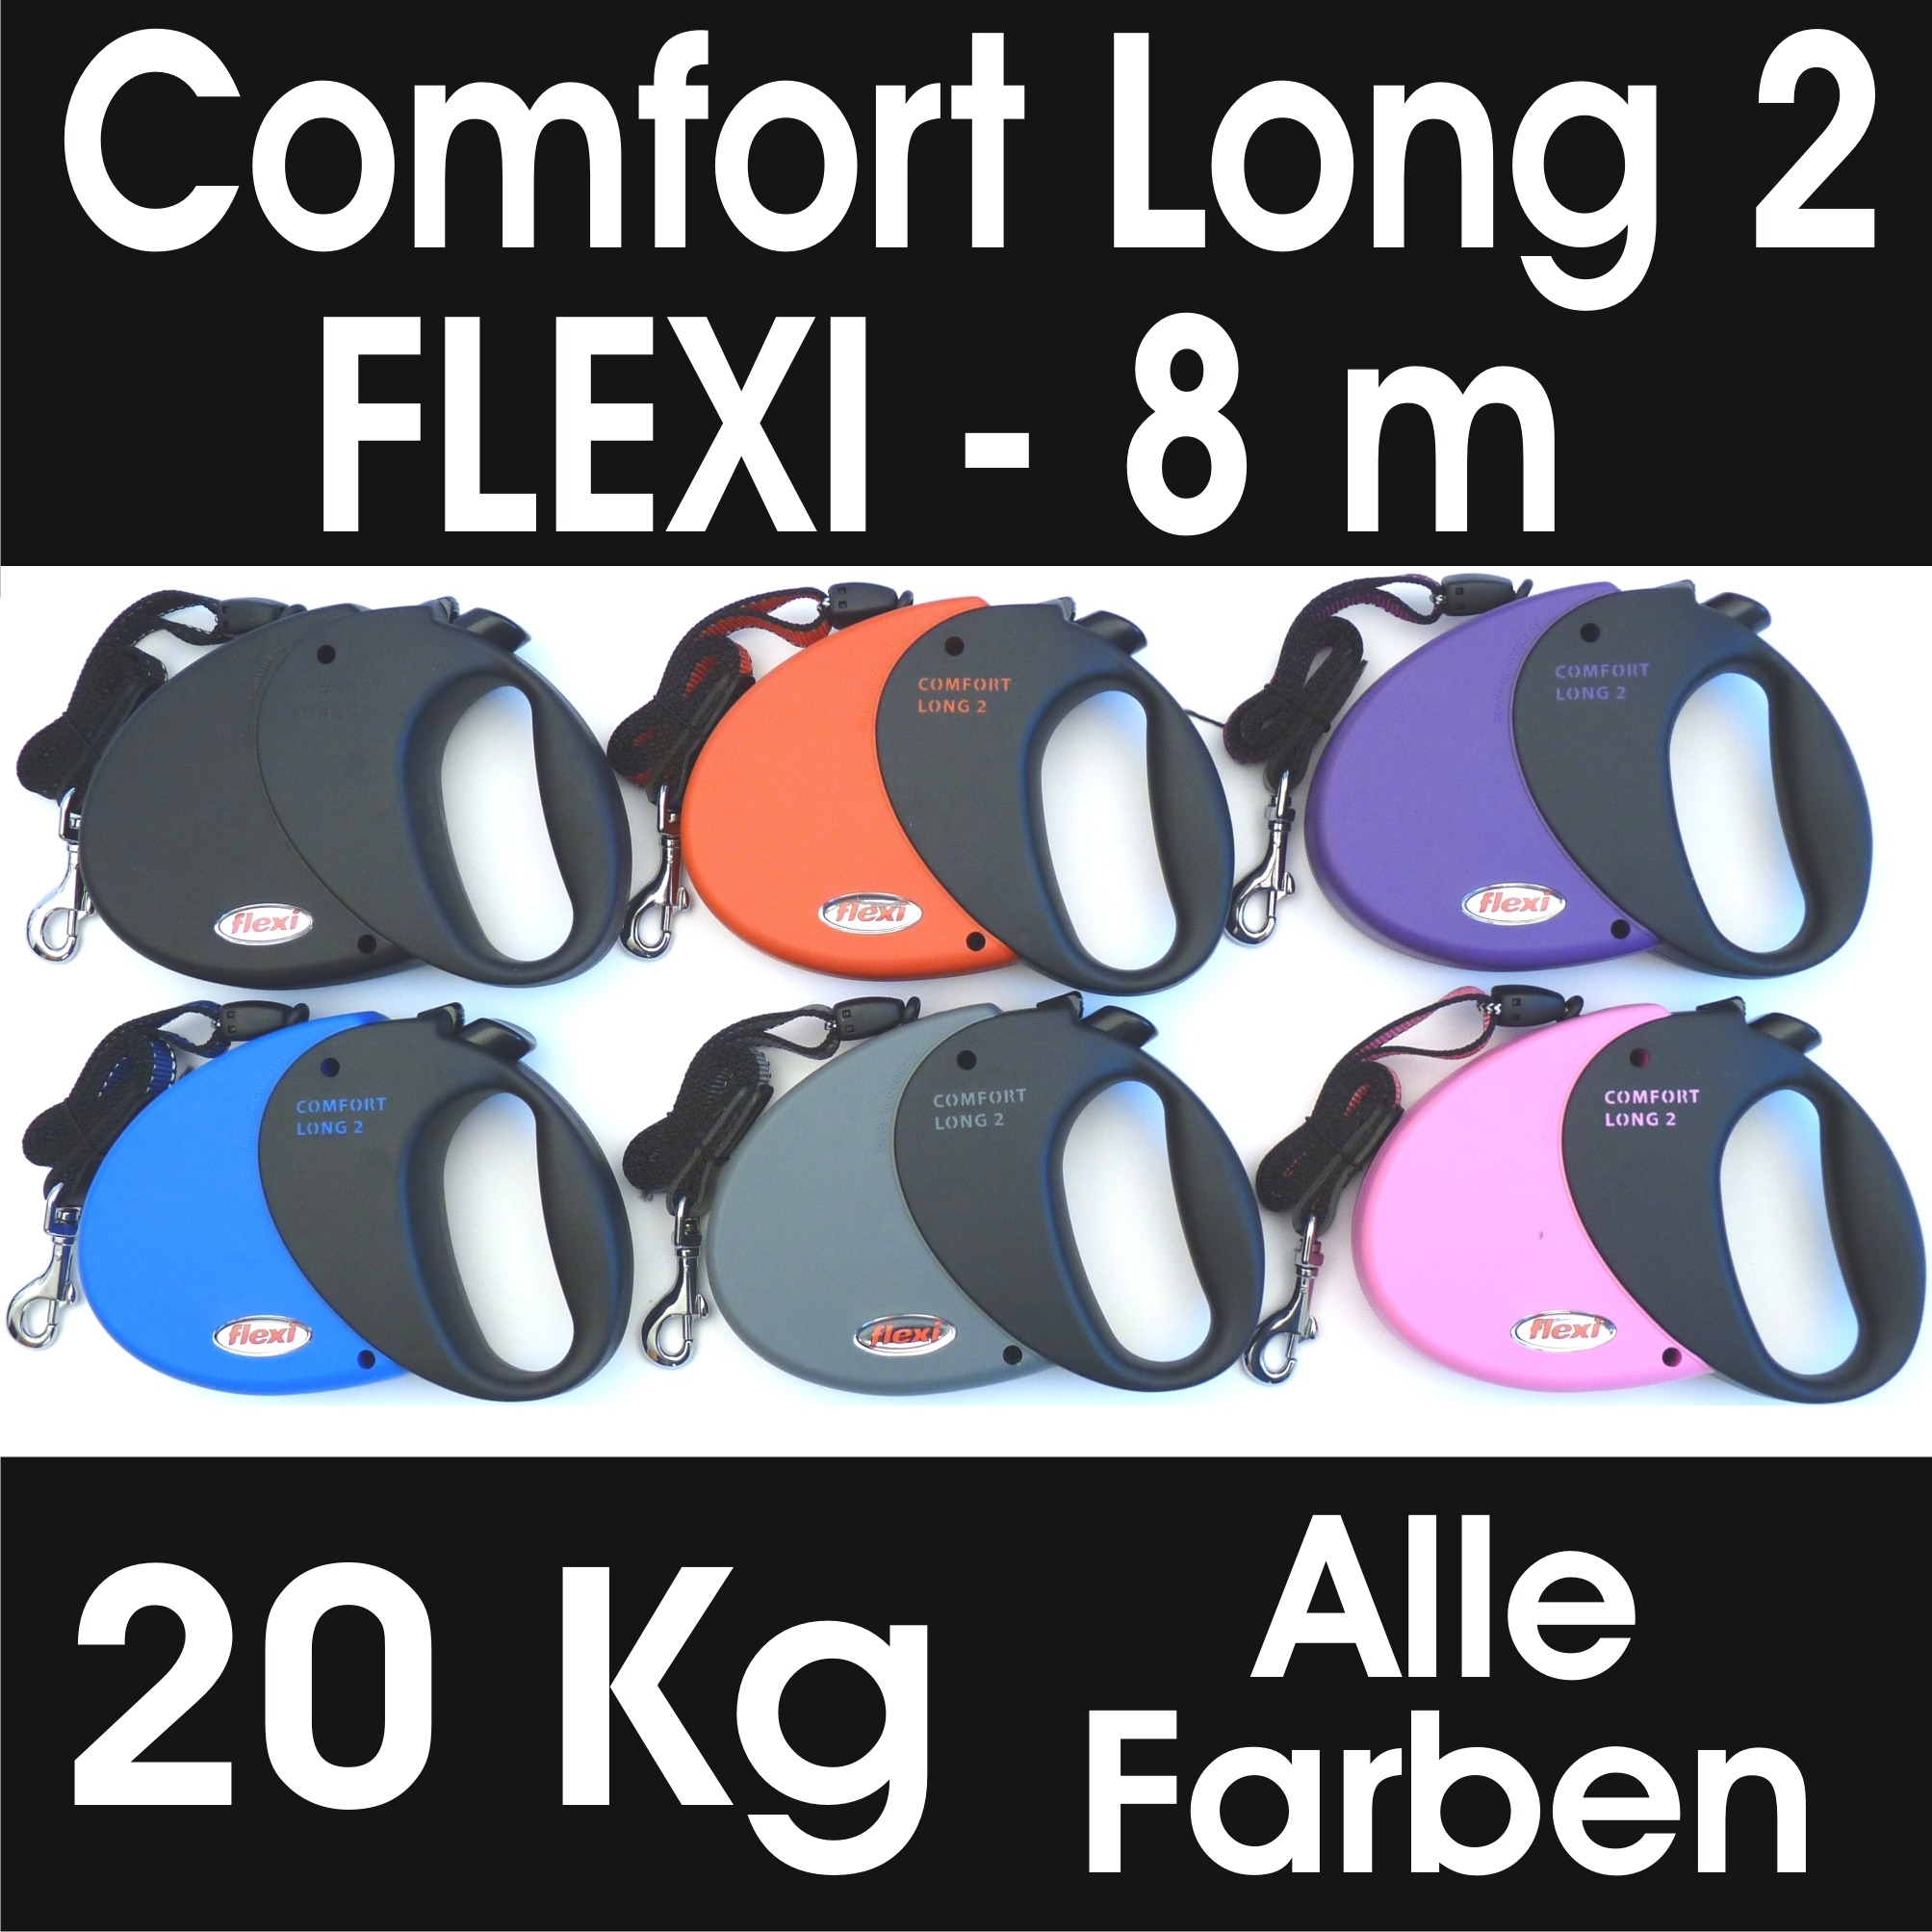 ComfortLong2